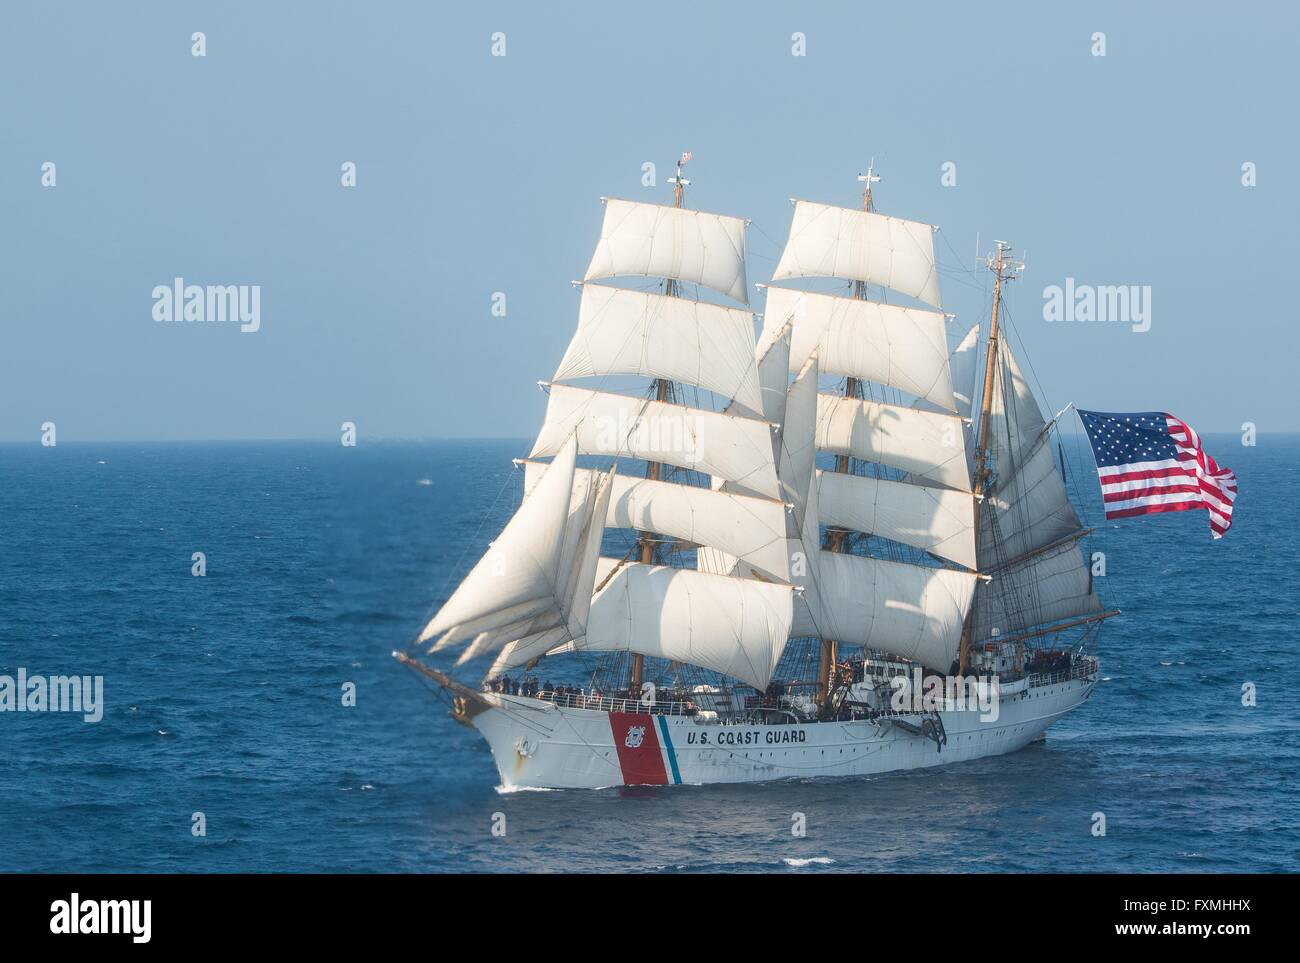 The Coast Guard barque Eagle with full sails July 30, 2015 in the Atlantic Ocean. - Stock Image